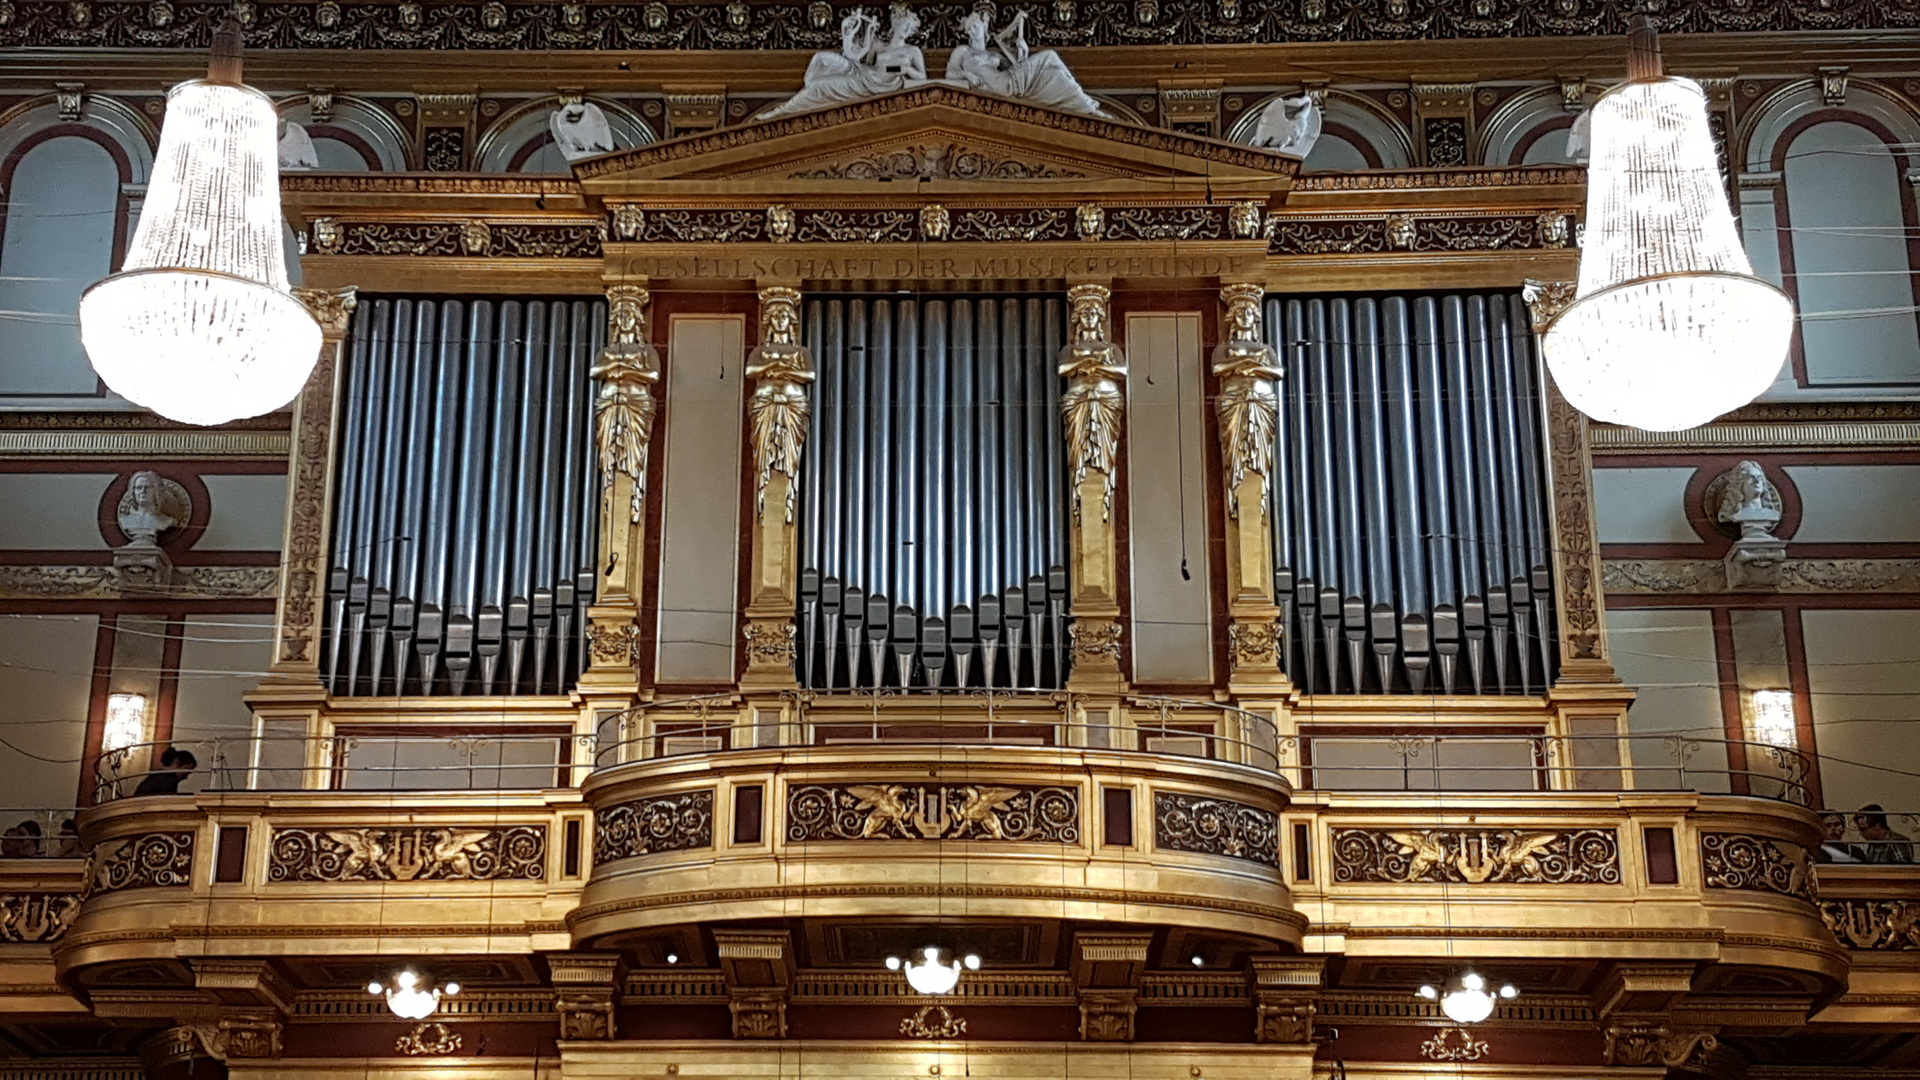 Orgel im Wiener Musikverein | organ of the Musikverein in Vienna